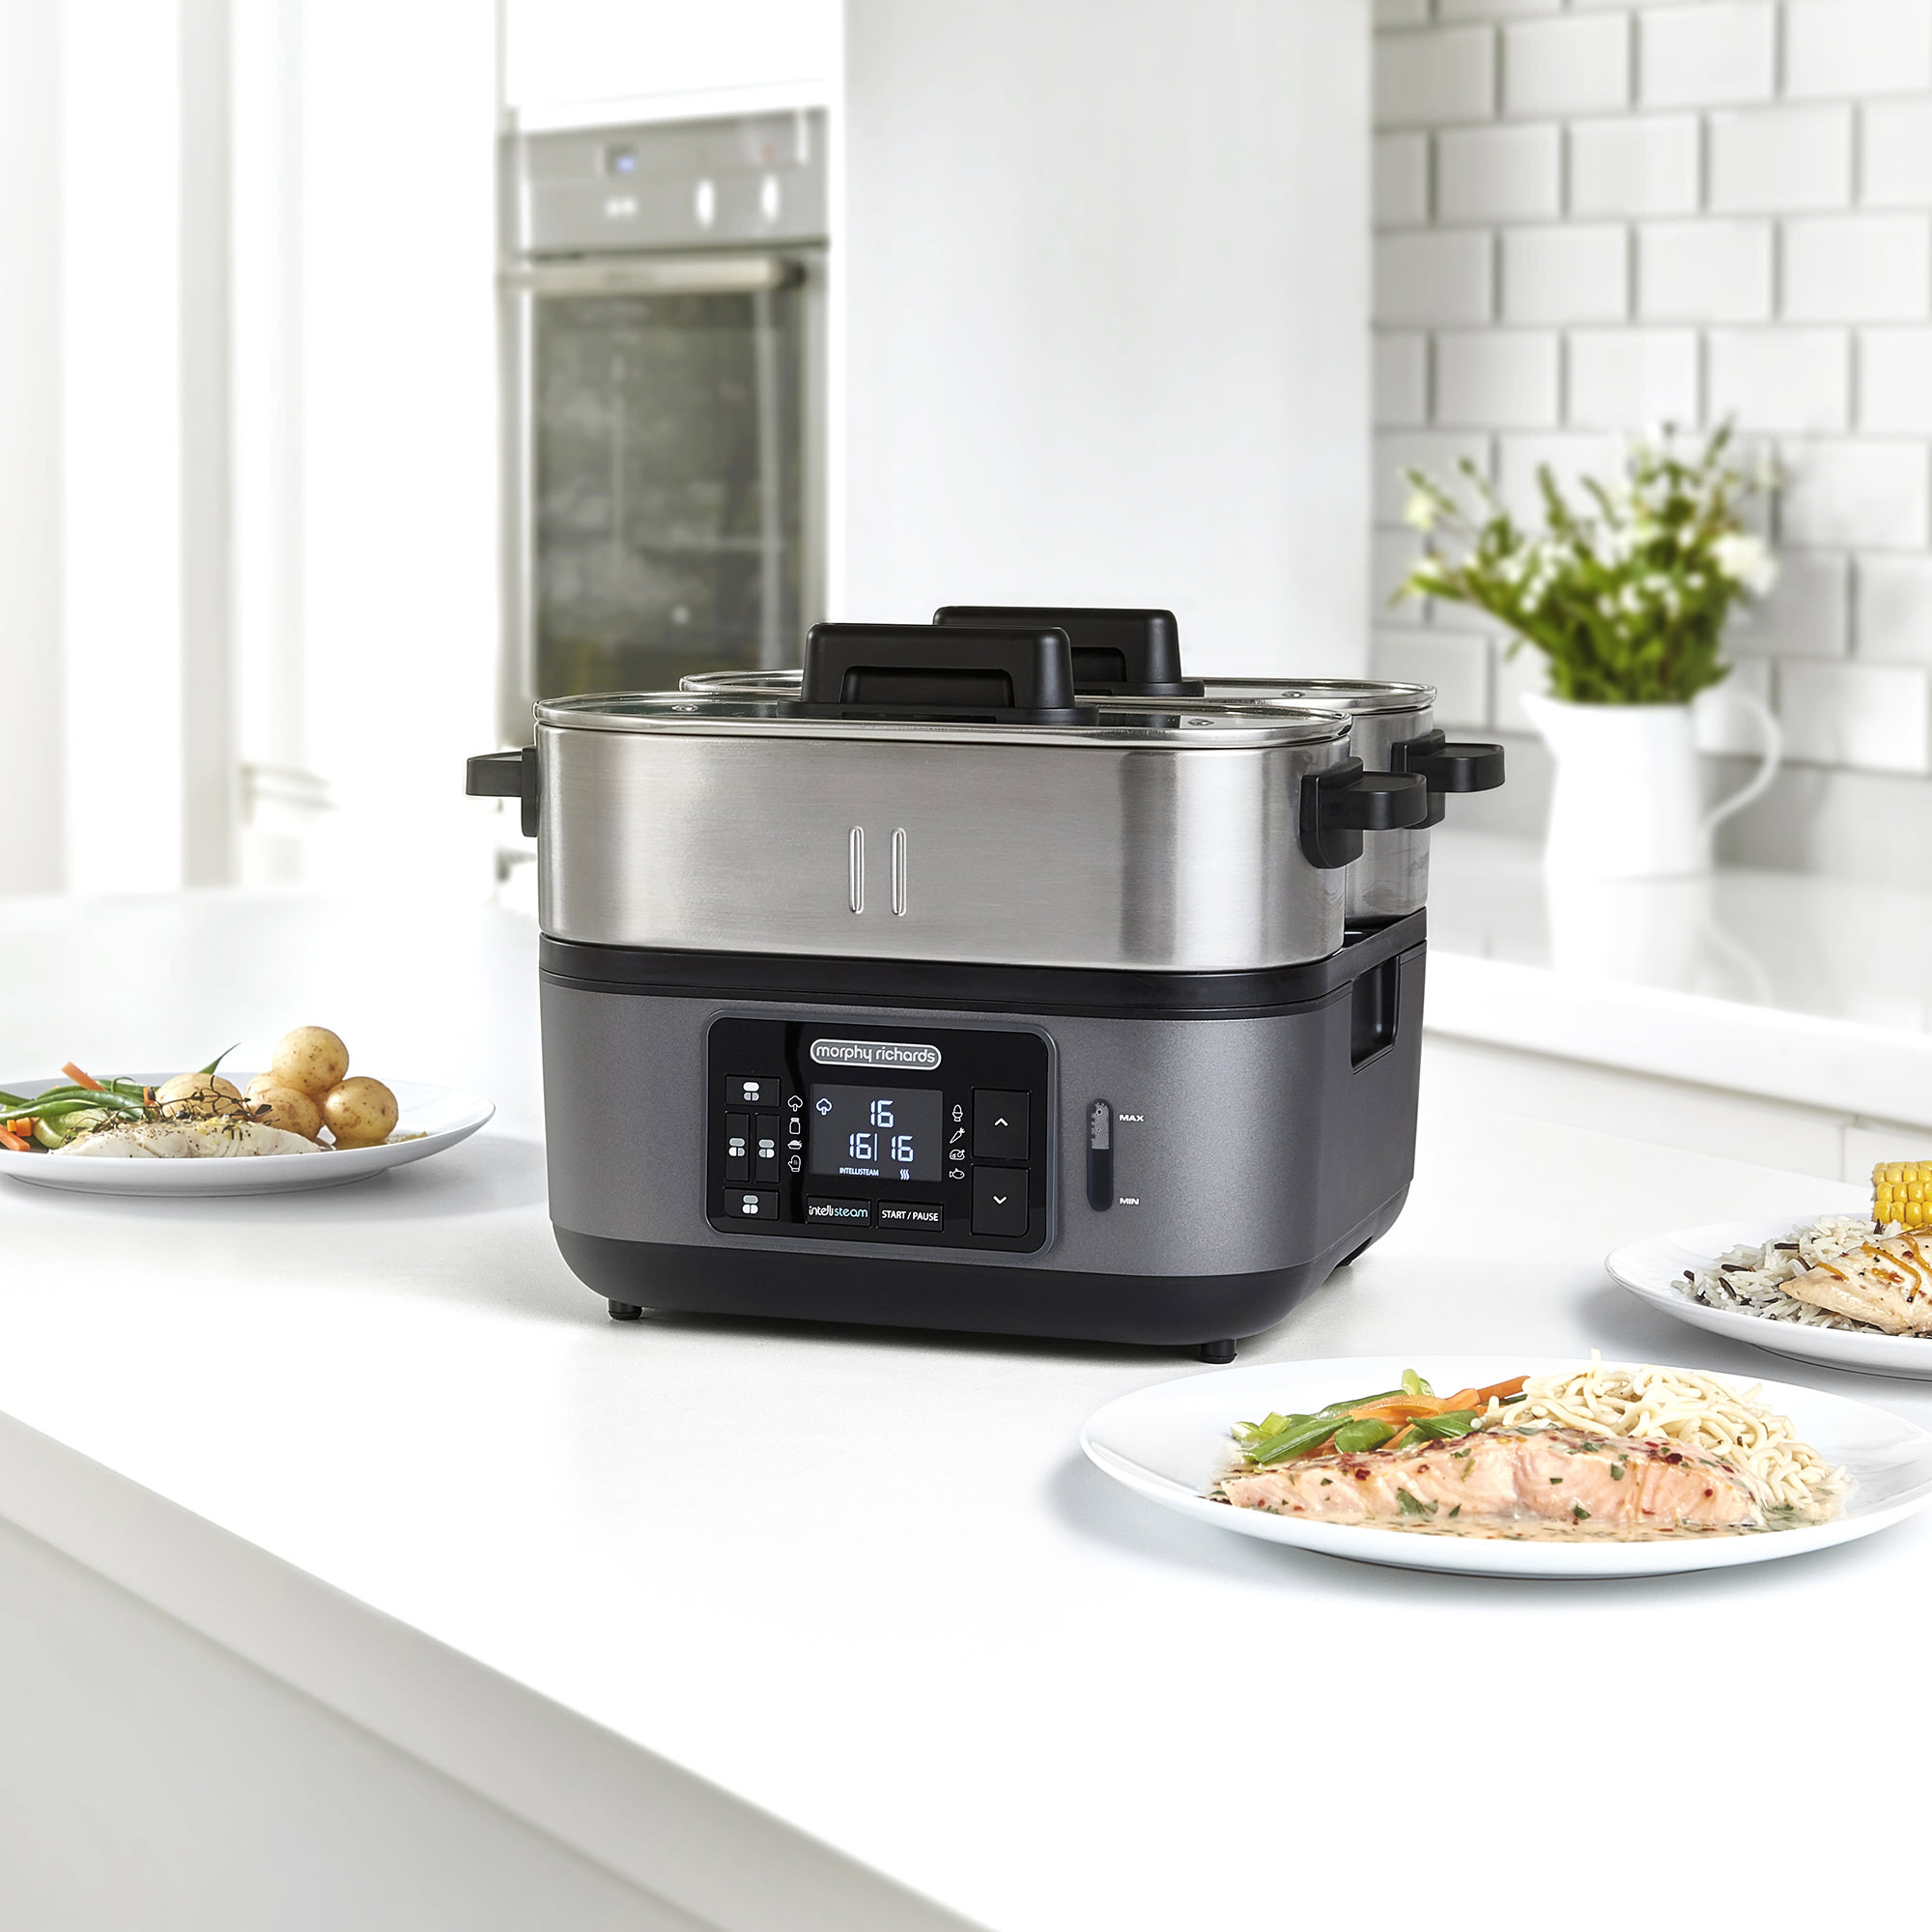 Morphy Richards Intellisteam Electric Food Steamer image #3